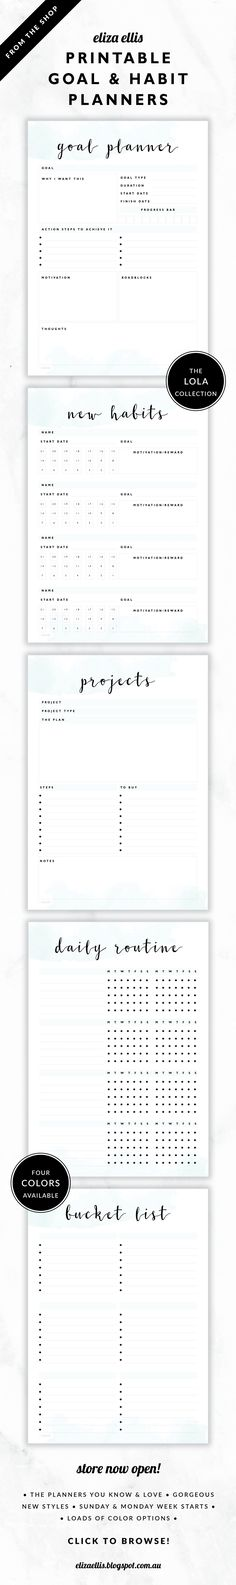 Goal Planner, Habit Tracker, Project Planner, Daily Routine and Bucket List // The Lola Collection by Eliza Ellis. Delicate watercolor design with pretty hand drawn calligraphy font. Available in 4 colors – lilac, viola, snowdrop and peony. Documents print to A4 or A5. Monday and Sunday week starts included.